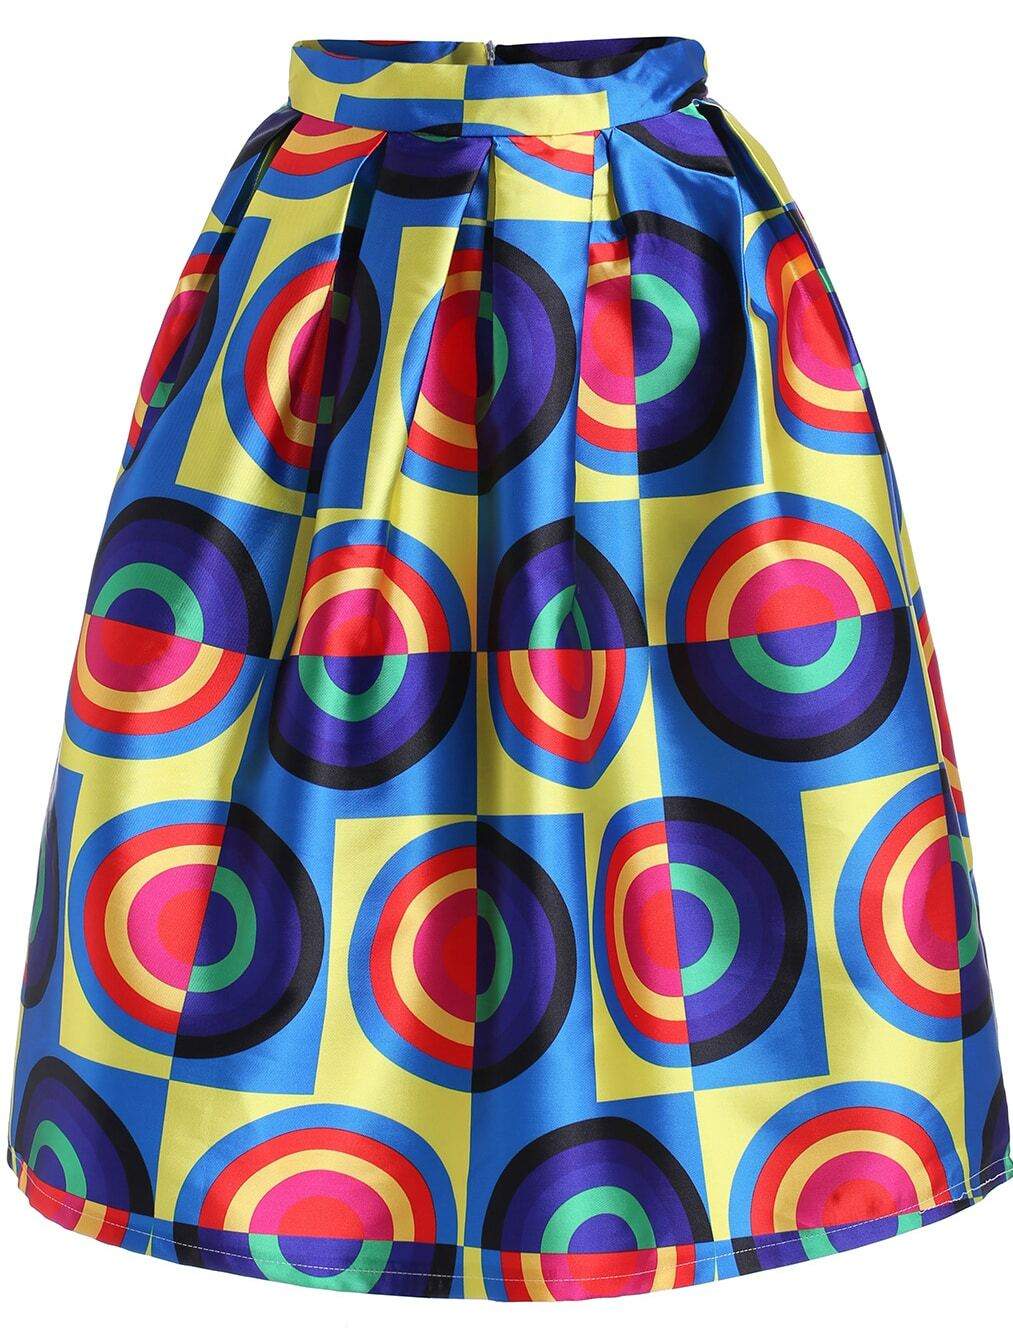 Multicolor Circle Print Flare Skirt SheIn(Sheinside)